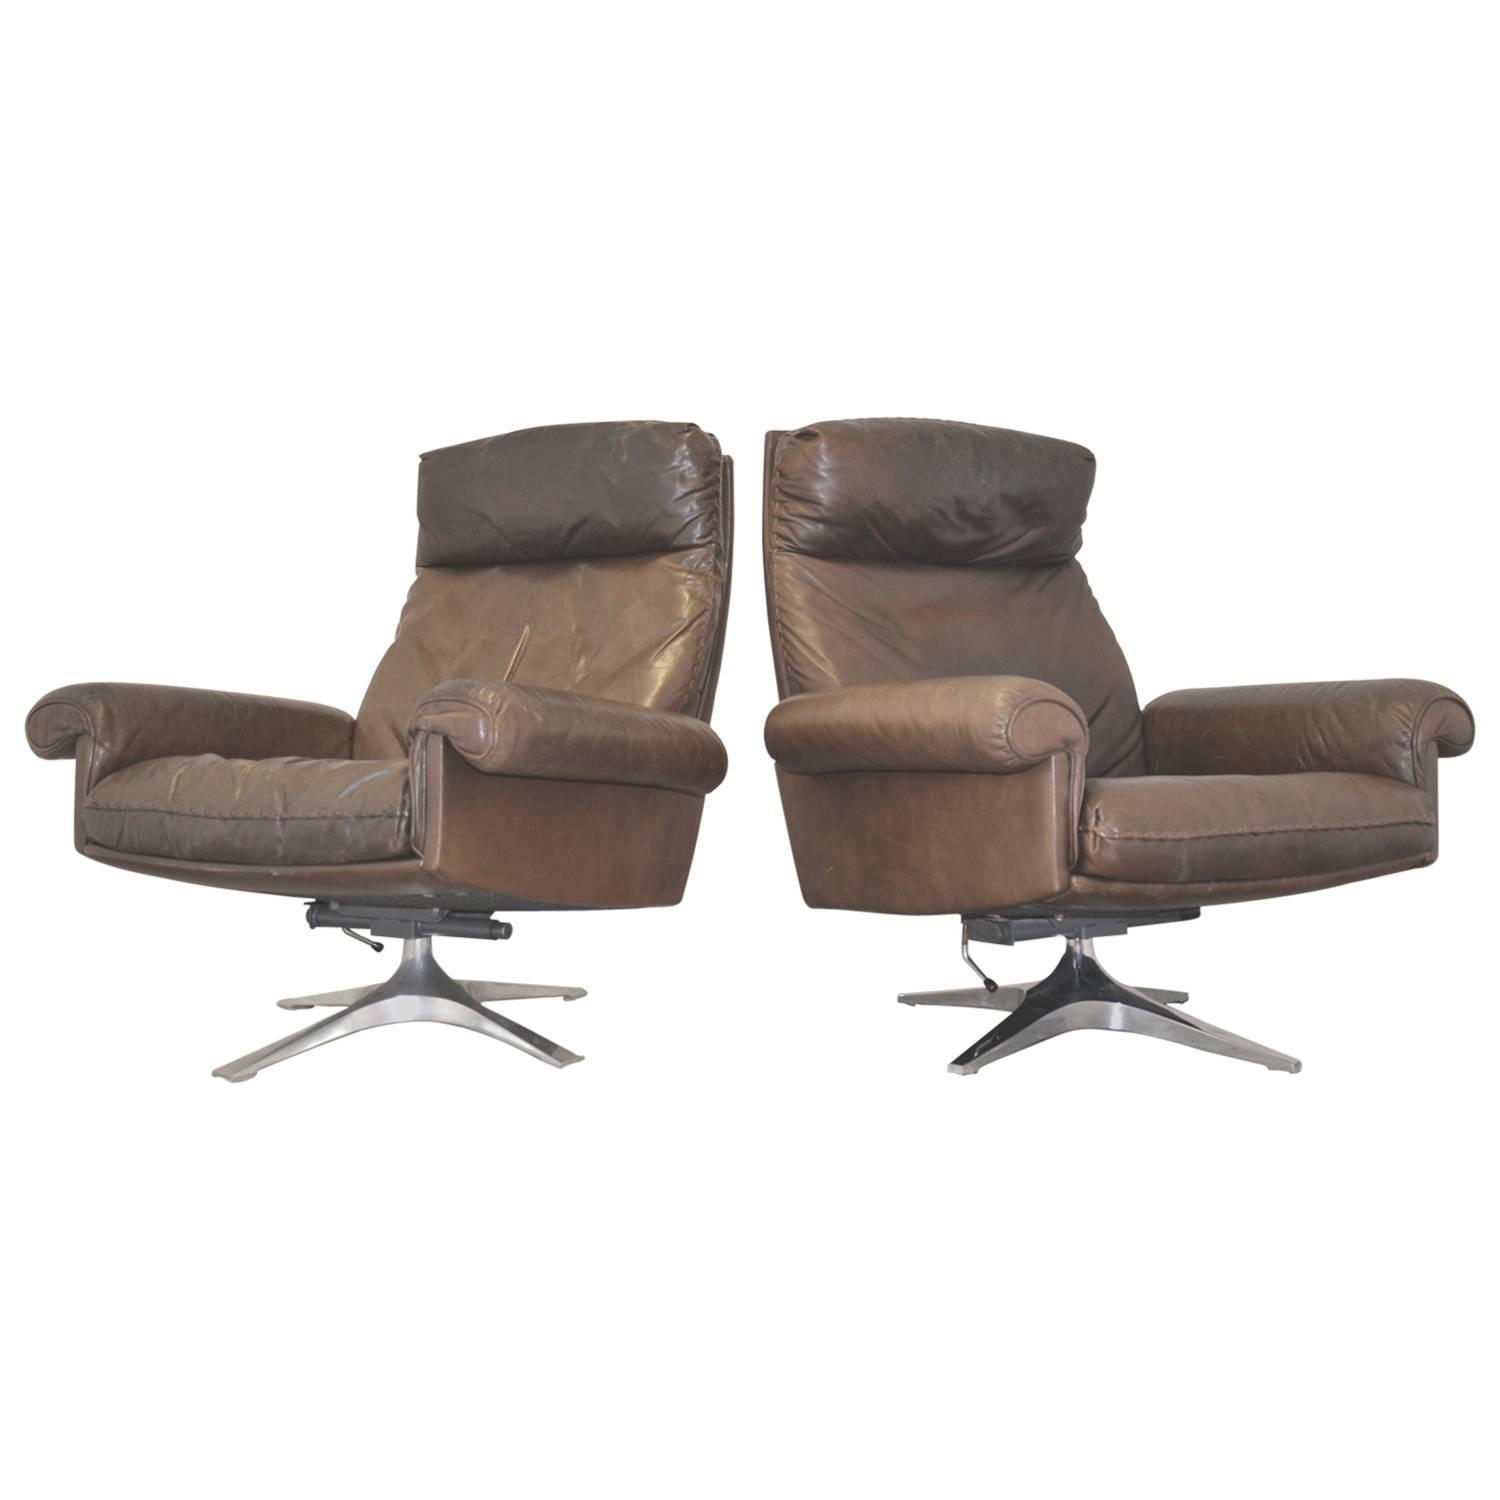 Bar lounge chairs for sale pair of milo baughman thayer for Lounge furniture for sale